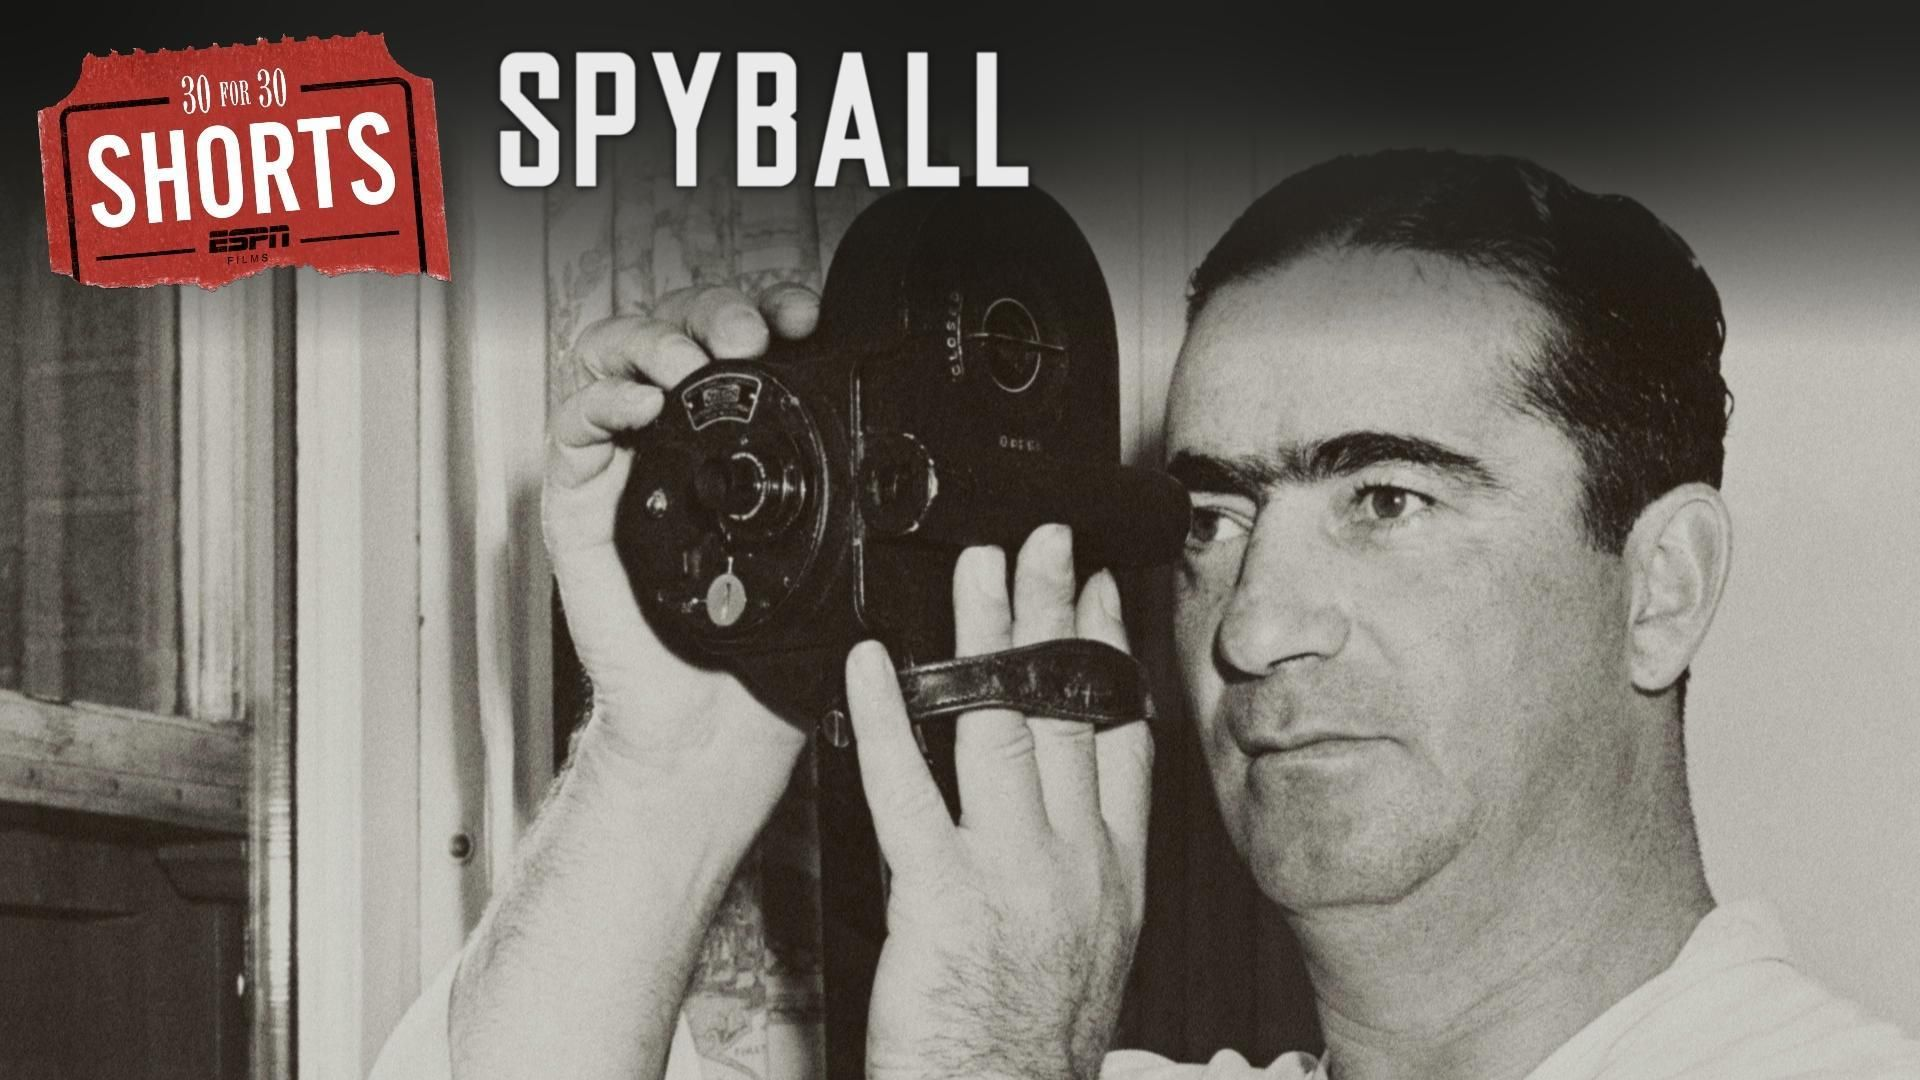 30 for 30 Shorts: Spyball